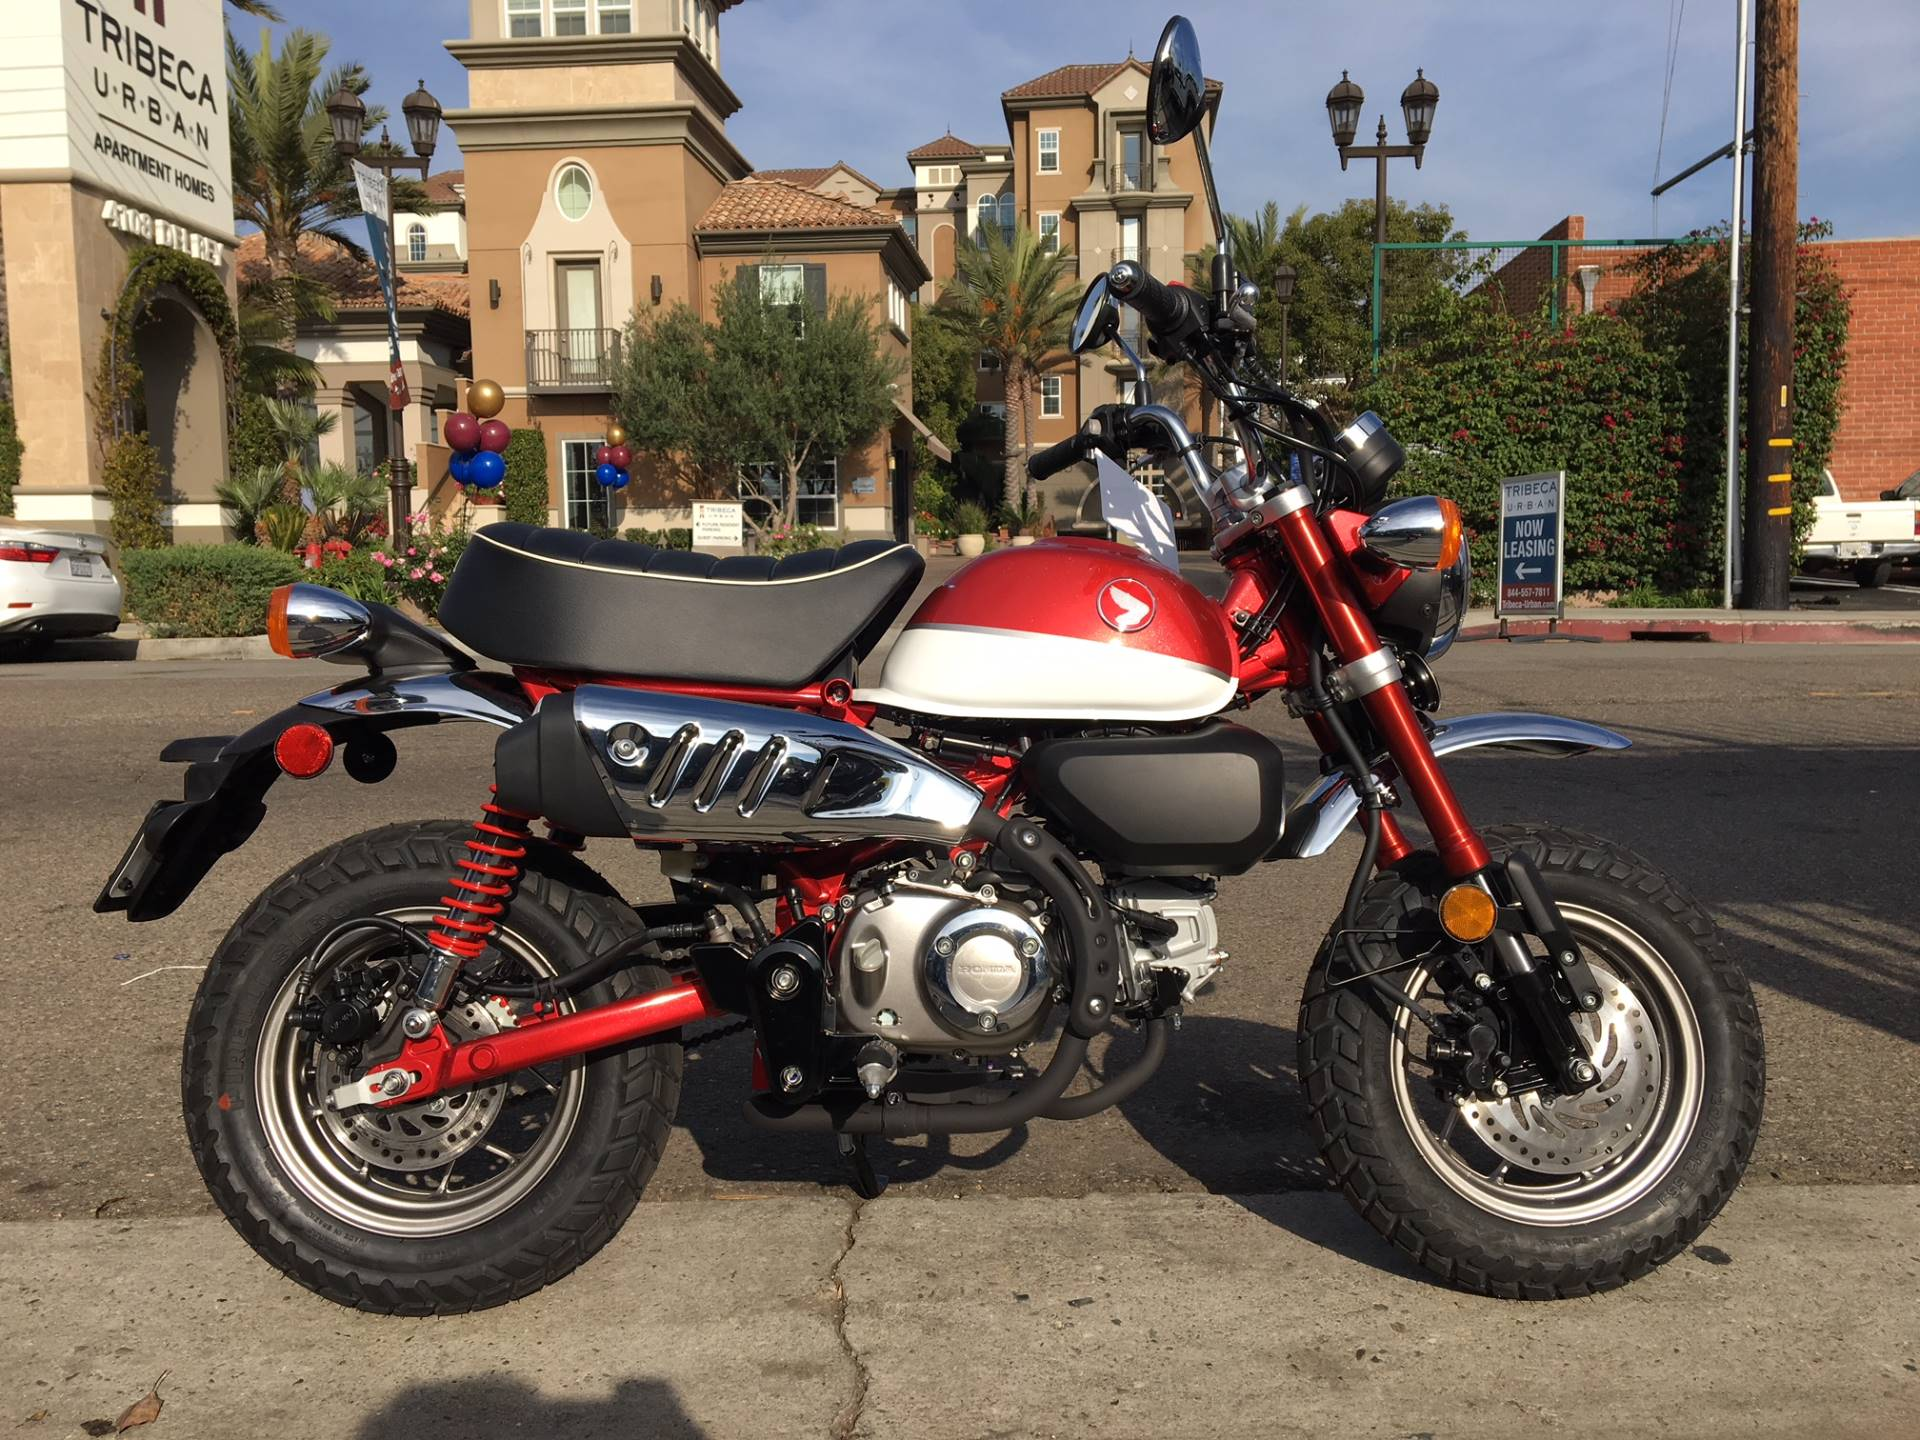 2019 Honda Monkey in Marina Del Rey, California